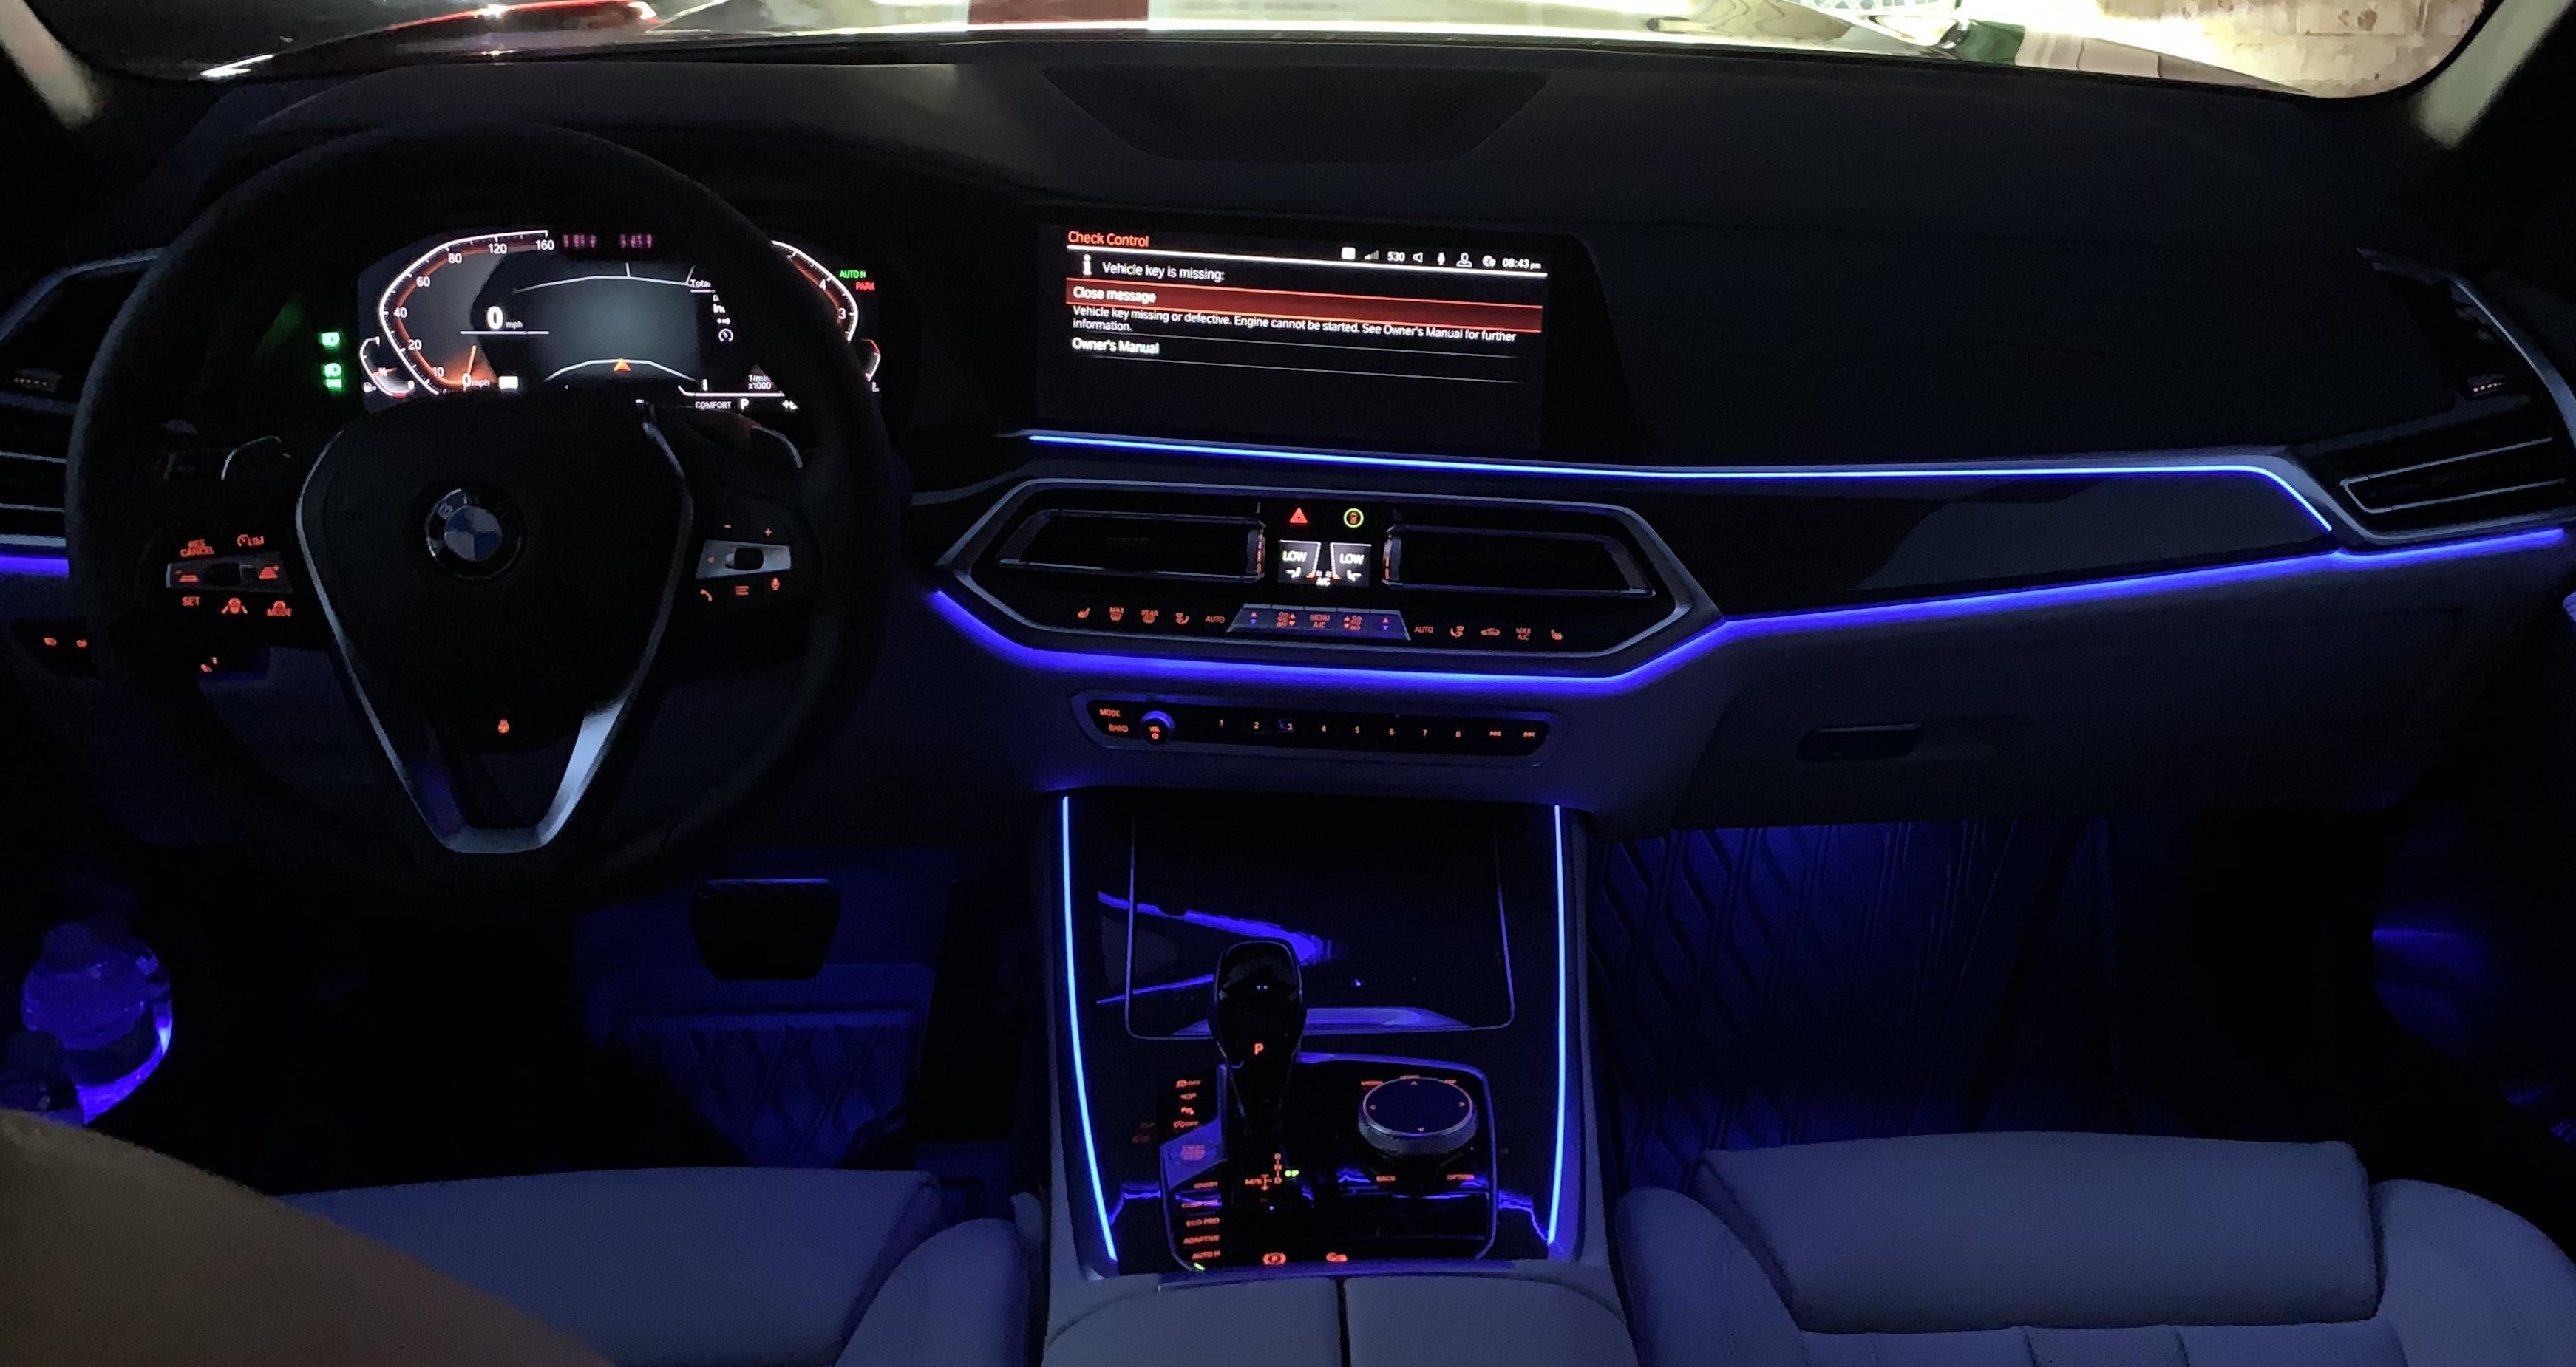 Ambient Lighting In The New X5 Ambient Lighting New X5 Ambient